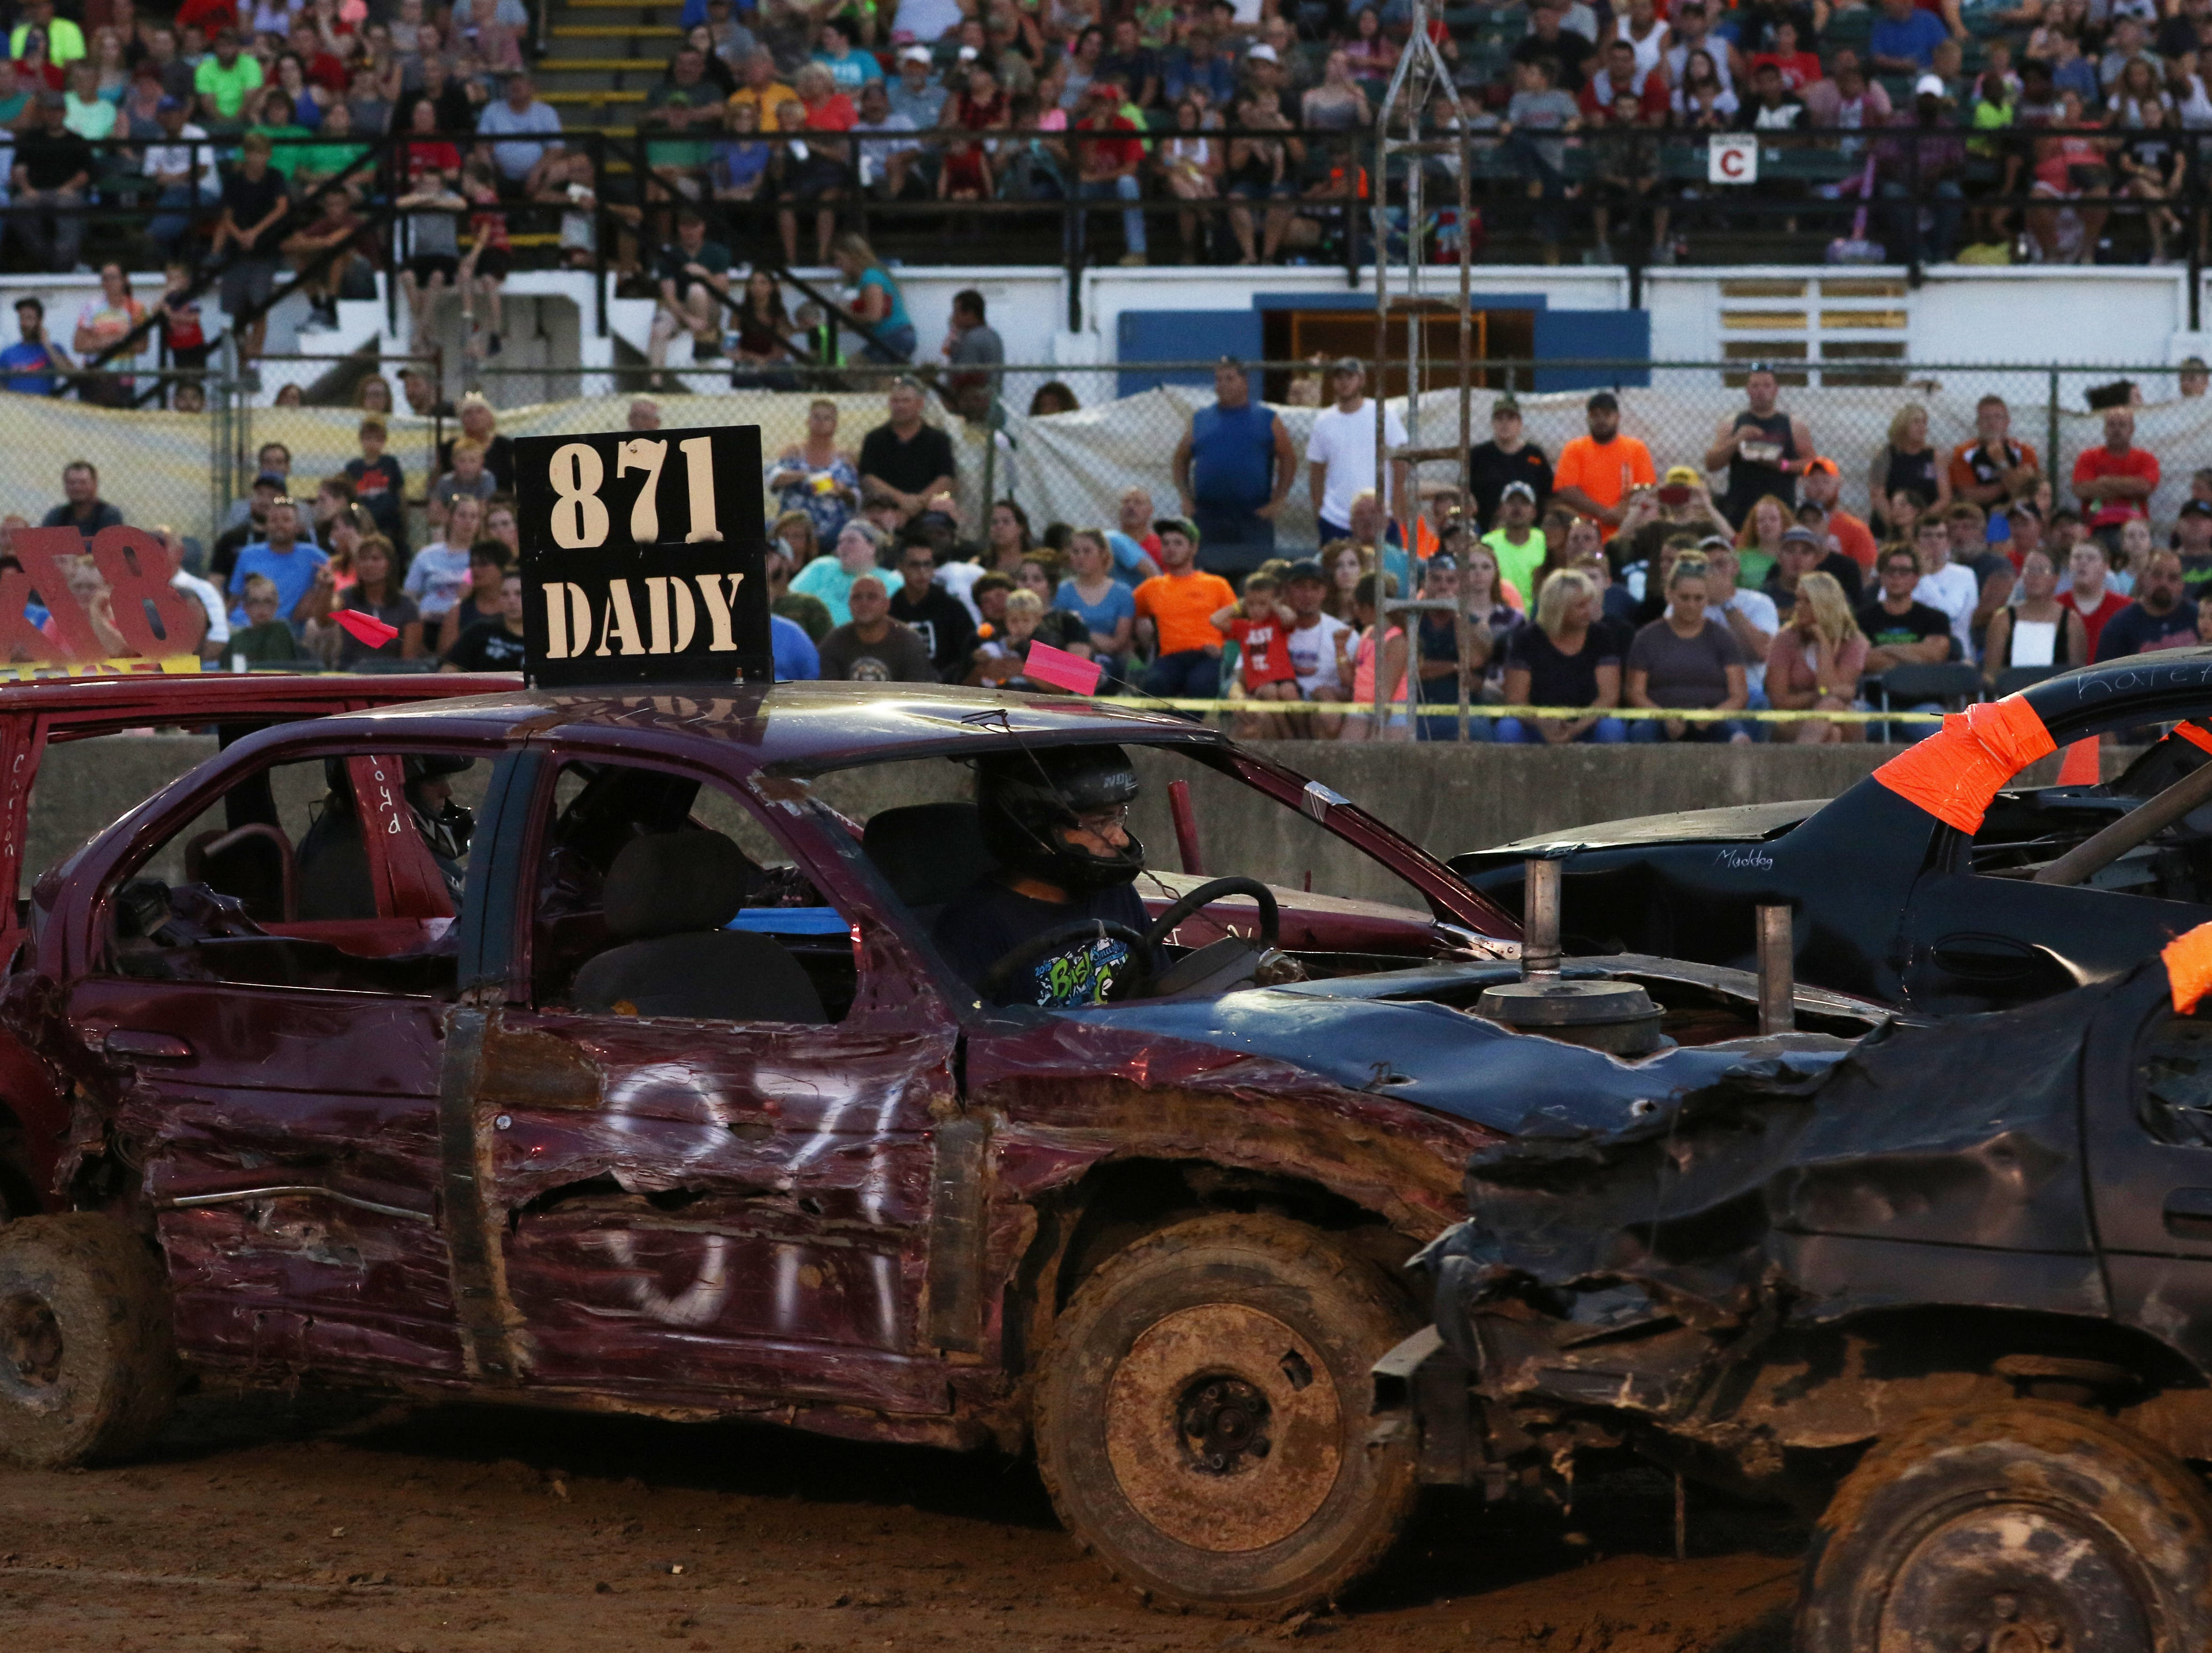 Jim Dady takes aim during the Sarge and Sons Demolition Derby at the Muskingum County Fair on Tuesday.